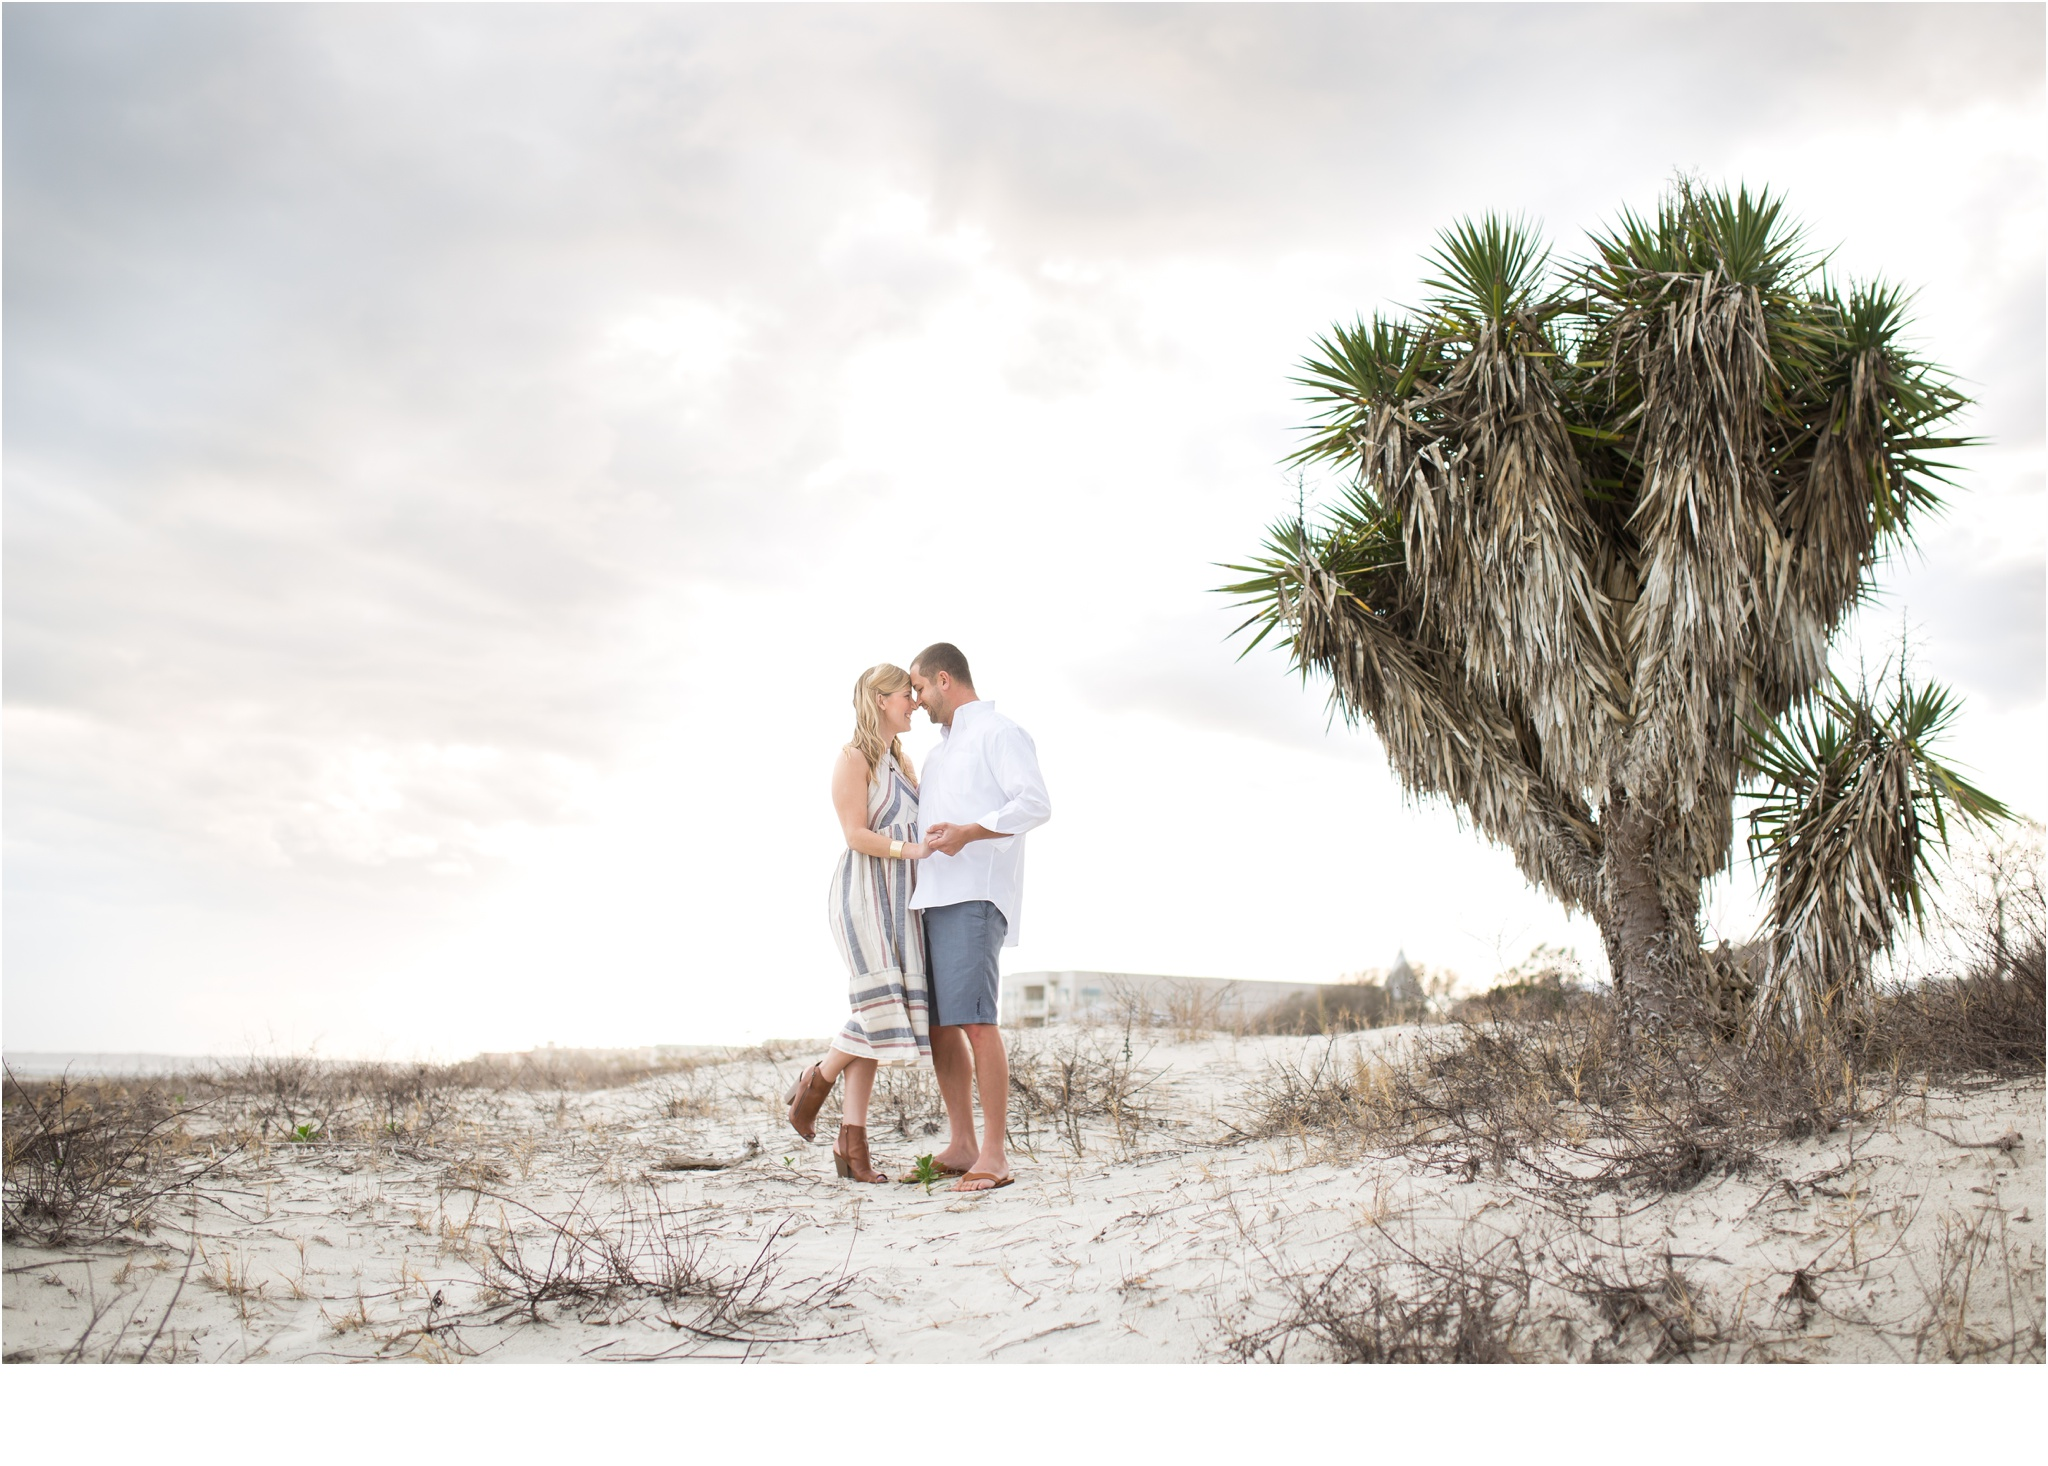 Rainey_Gregg_Photography_St._Simons_Island_Georgia_California_Wedding_Portrait_Photography_1415.jpg